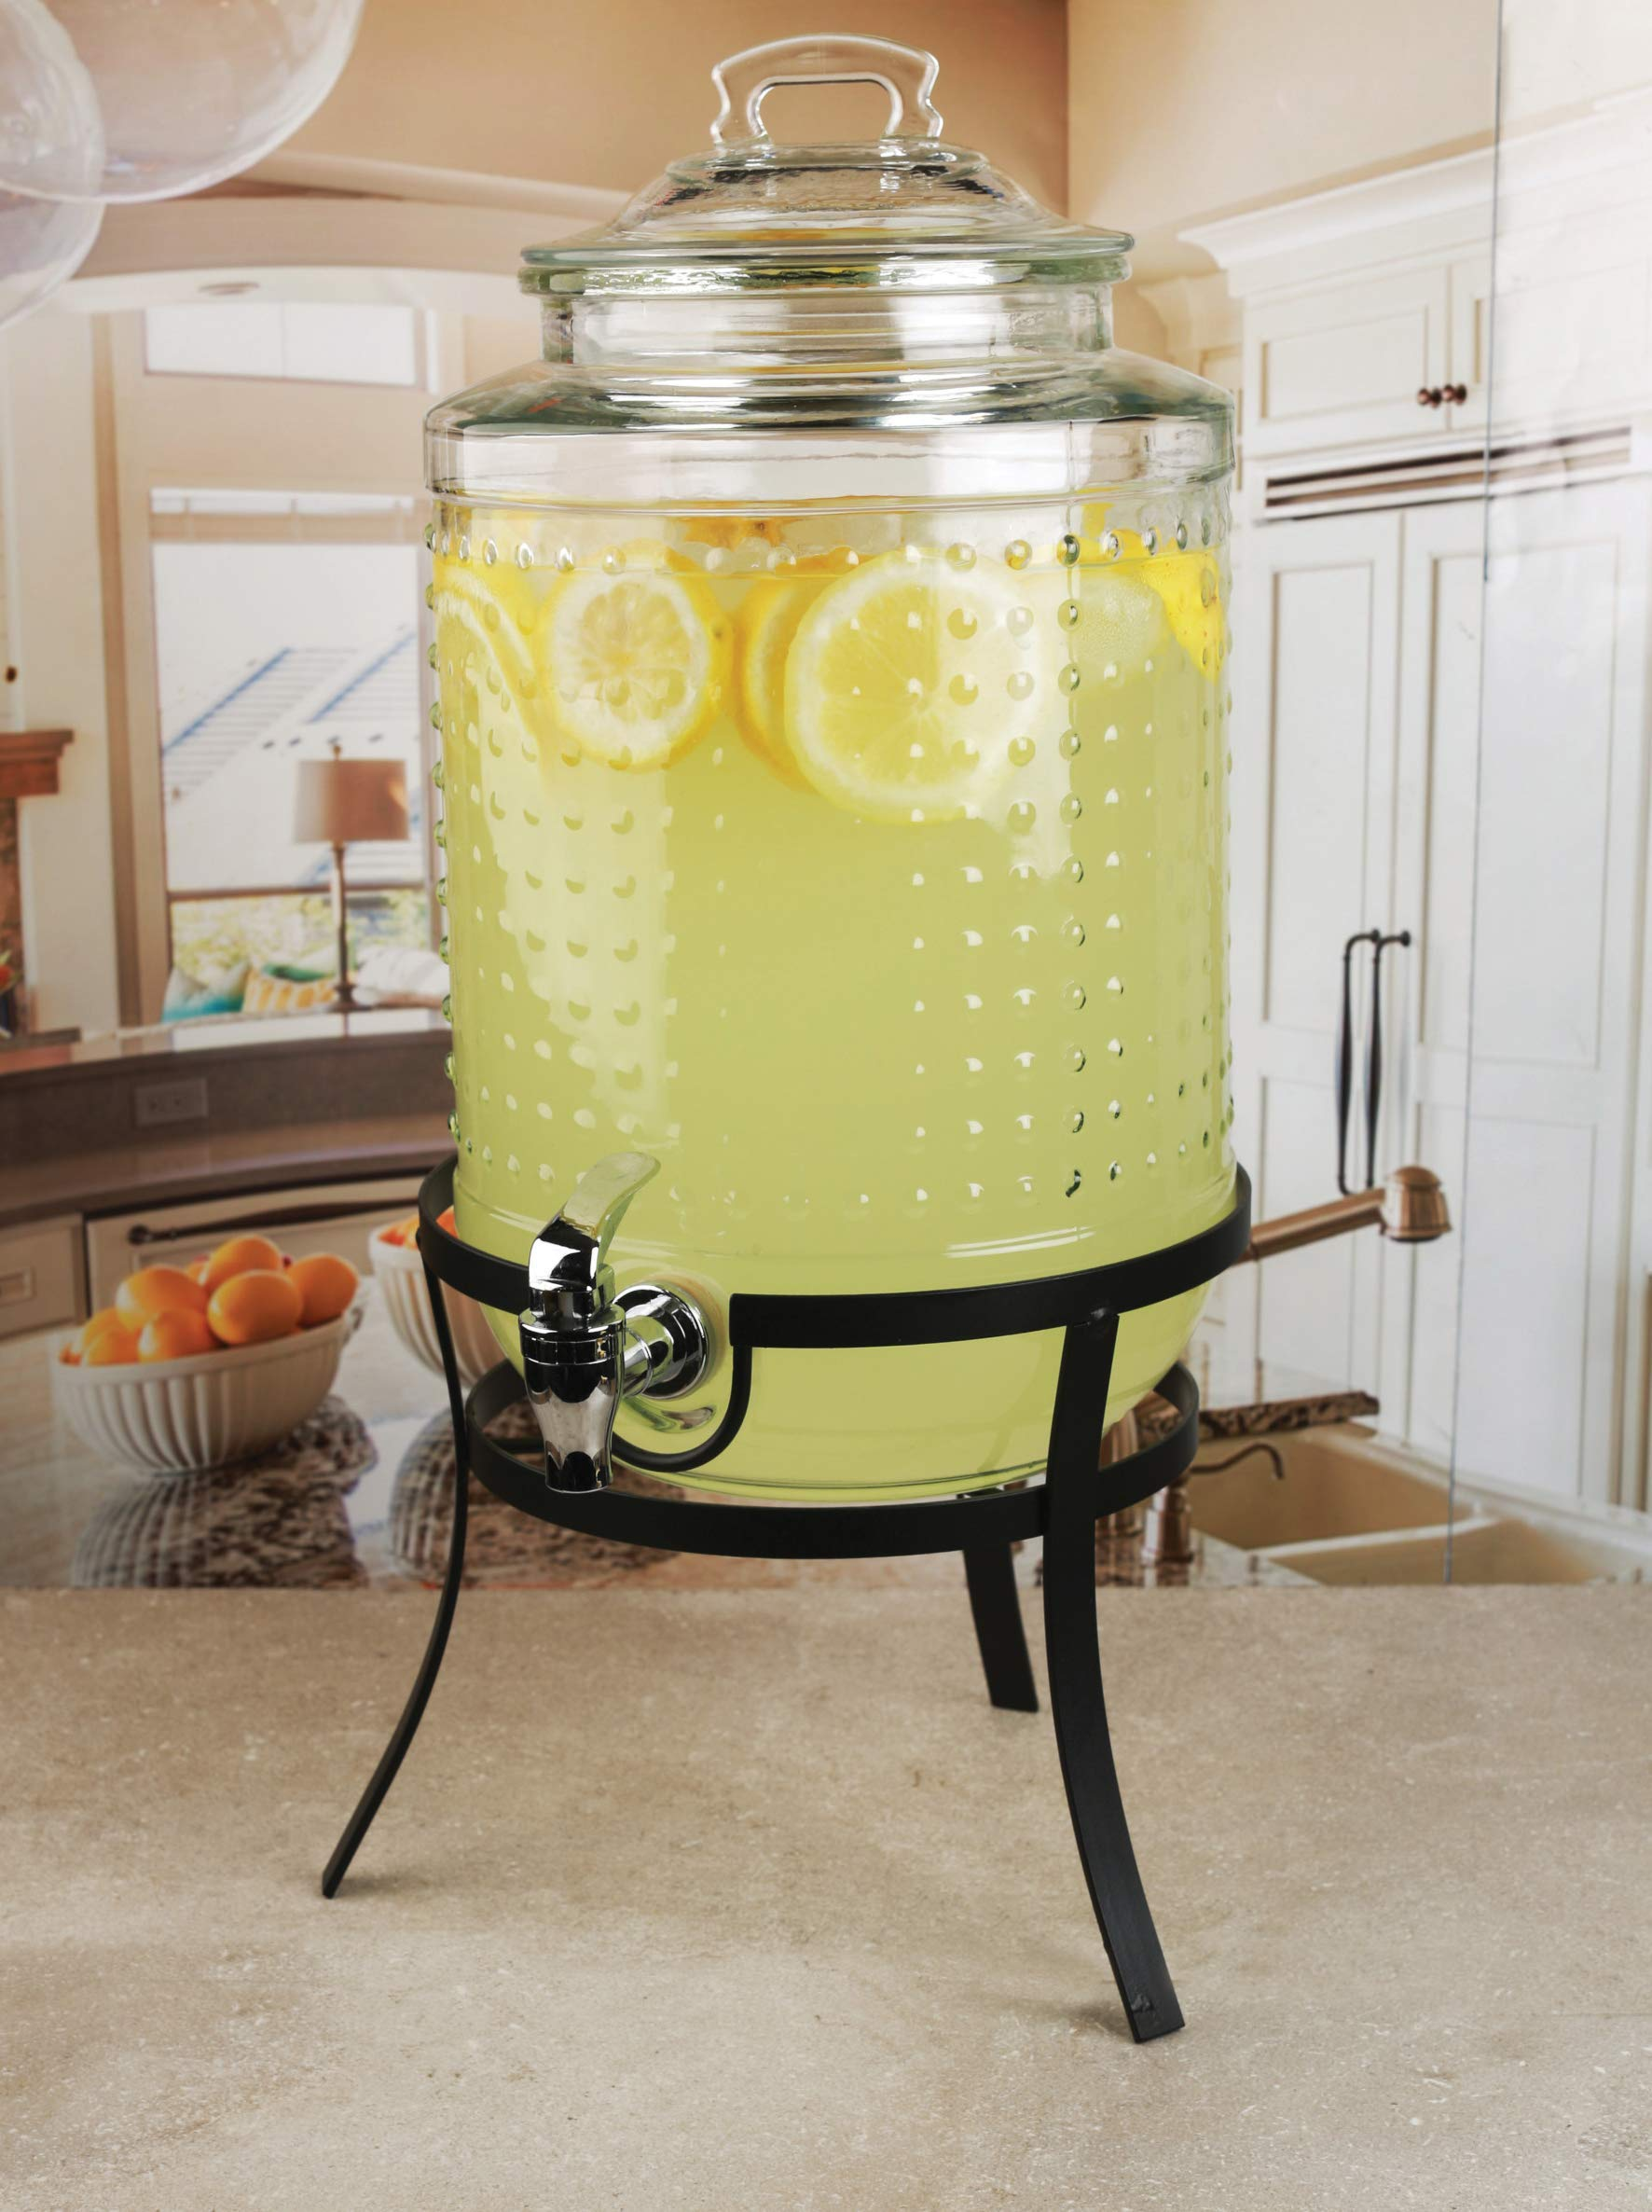 Circleware 69184 Vintage Dots Beverage Dispenser with Metal Stand, Glass Lid & Handle, Fun Party Home Entertainment Glassware Water Pitcher for Juice Drinks, Cold Beer, 1.9 Gallon, Hobnail by Circleware